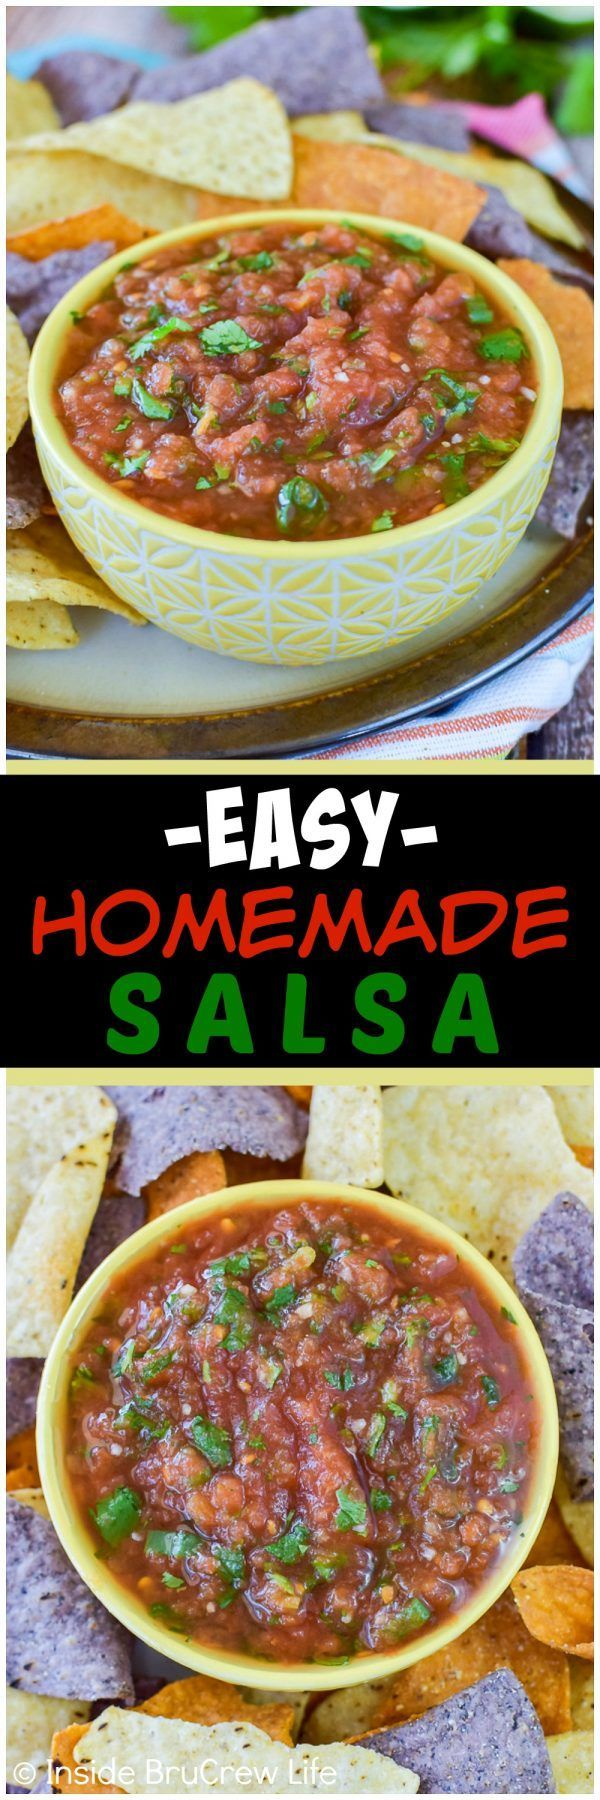 Easy Homemade Salsa - use onions, cilantro, and canned tomatoes for the best salsa!  Great dip recipe for chips or adding to dinners!